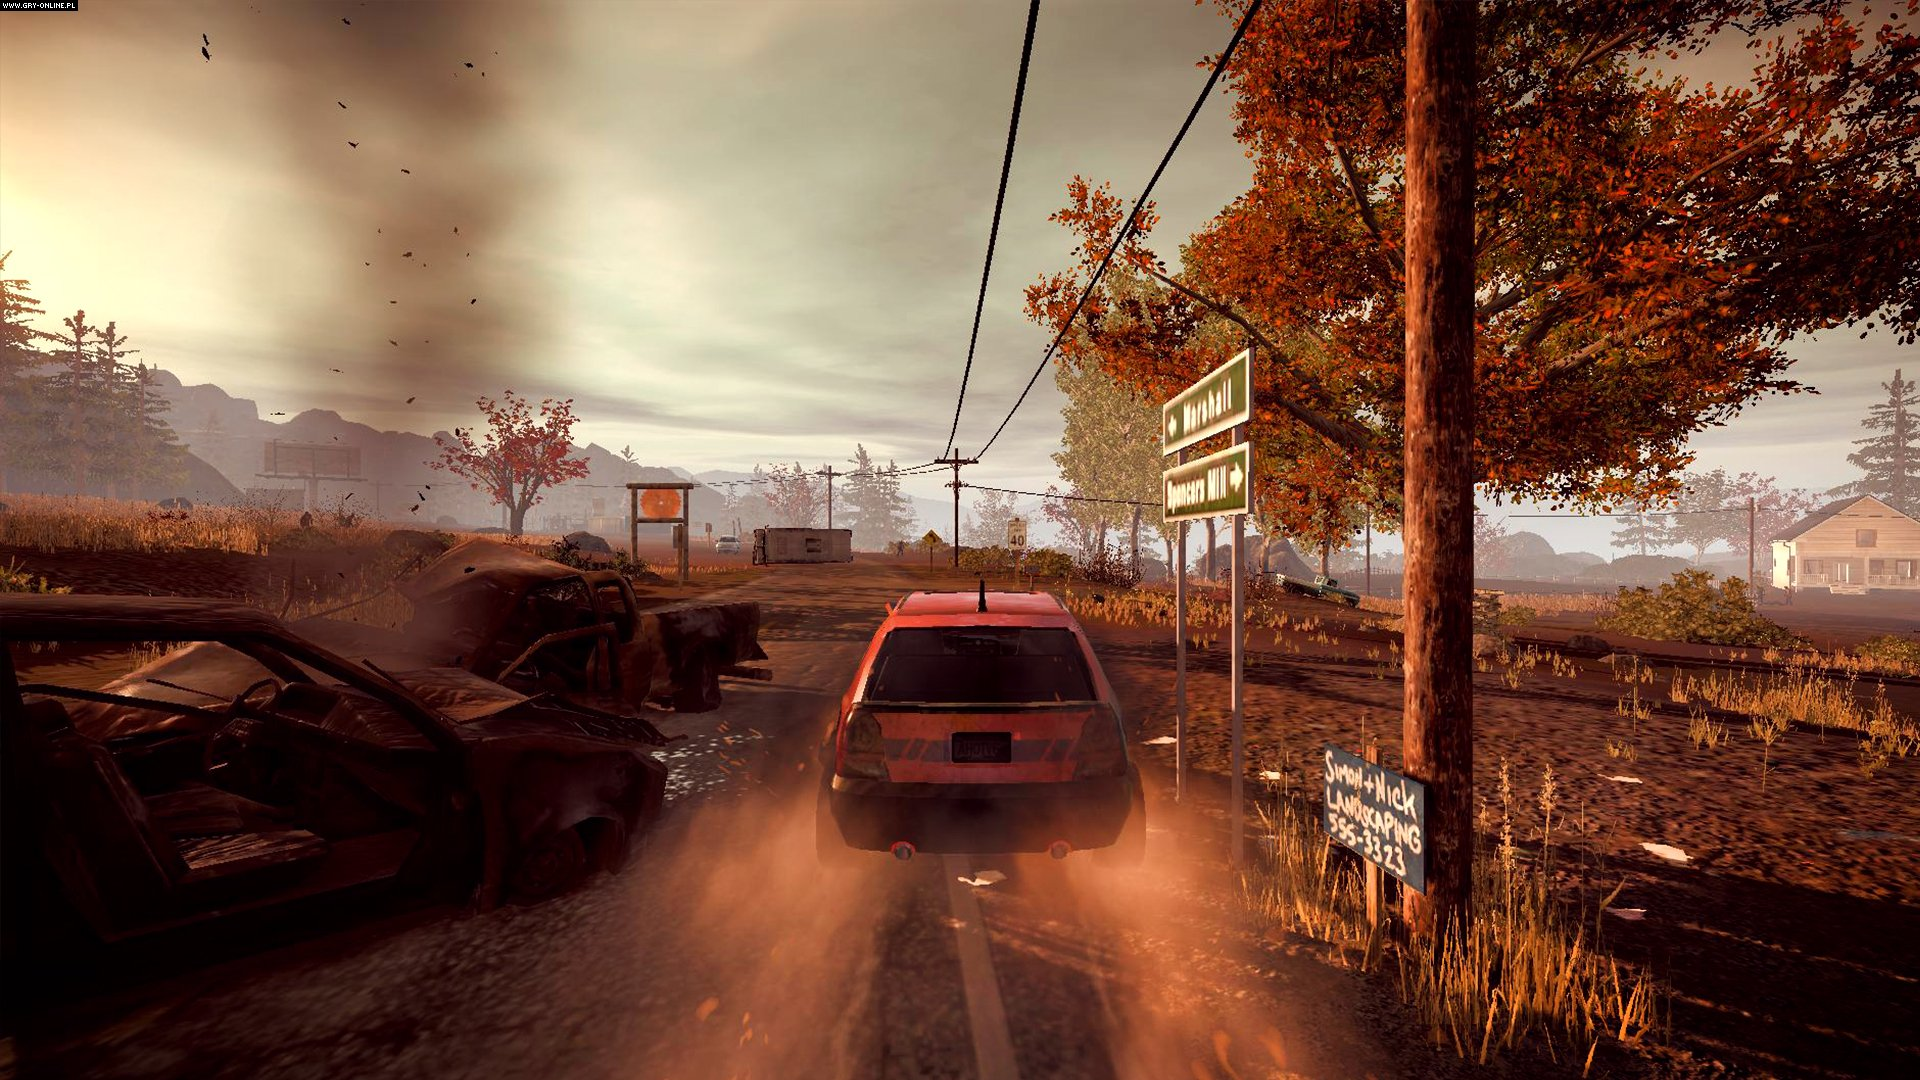 State of Decay: Year-One Survival Edition PC, XONE Gry Screen 2/16, Undead Labs